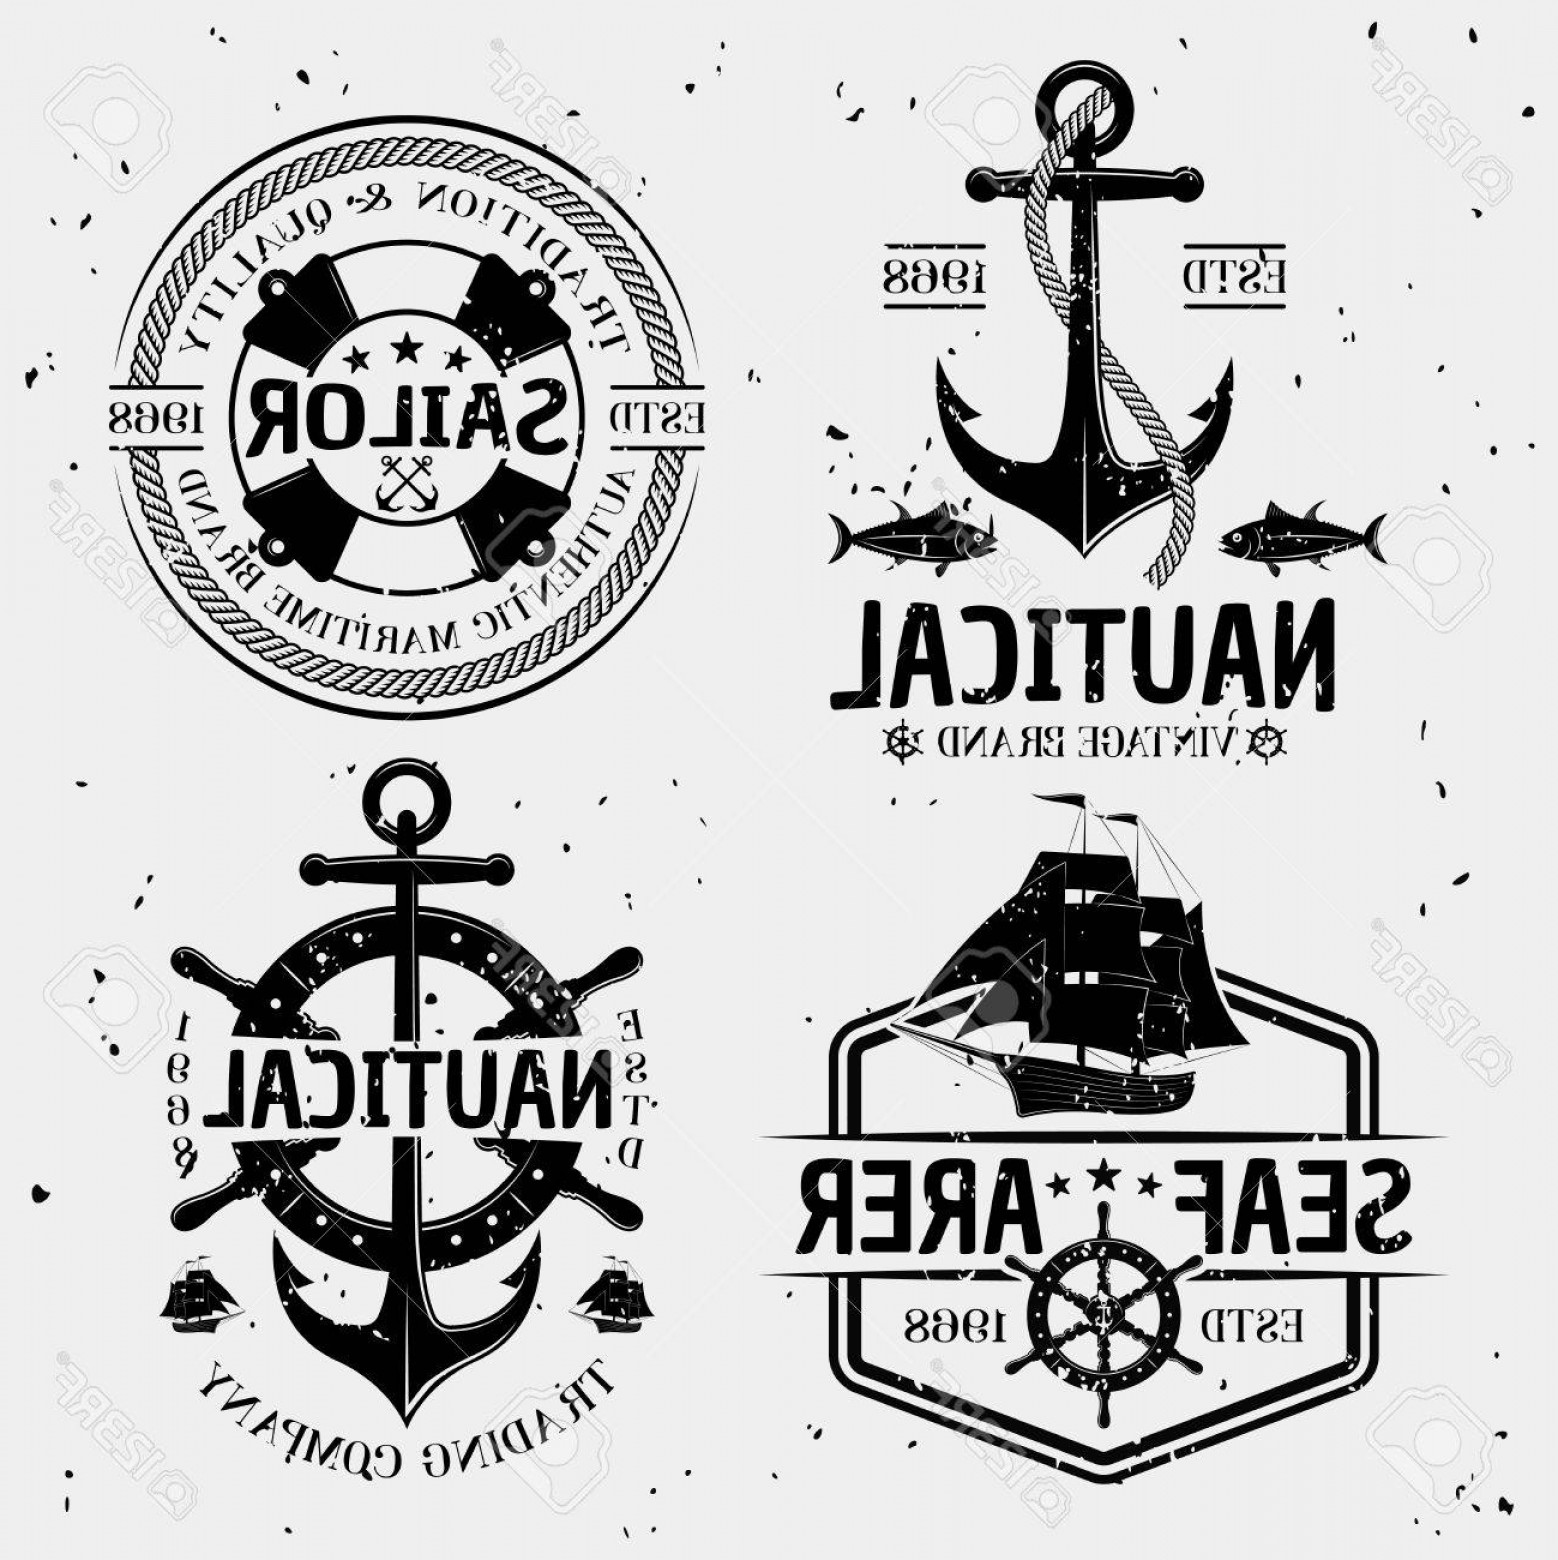 Nautical Star Vector Logo: Photostock Vector Nautical Monochrome Logos With Marine Symbols And Letterings On White Background With Tiny Stains Is